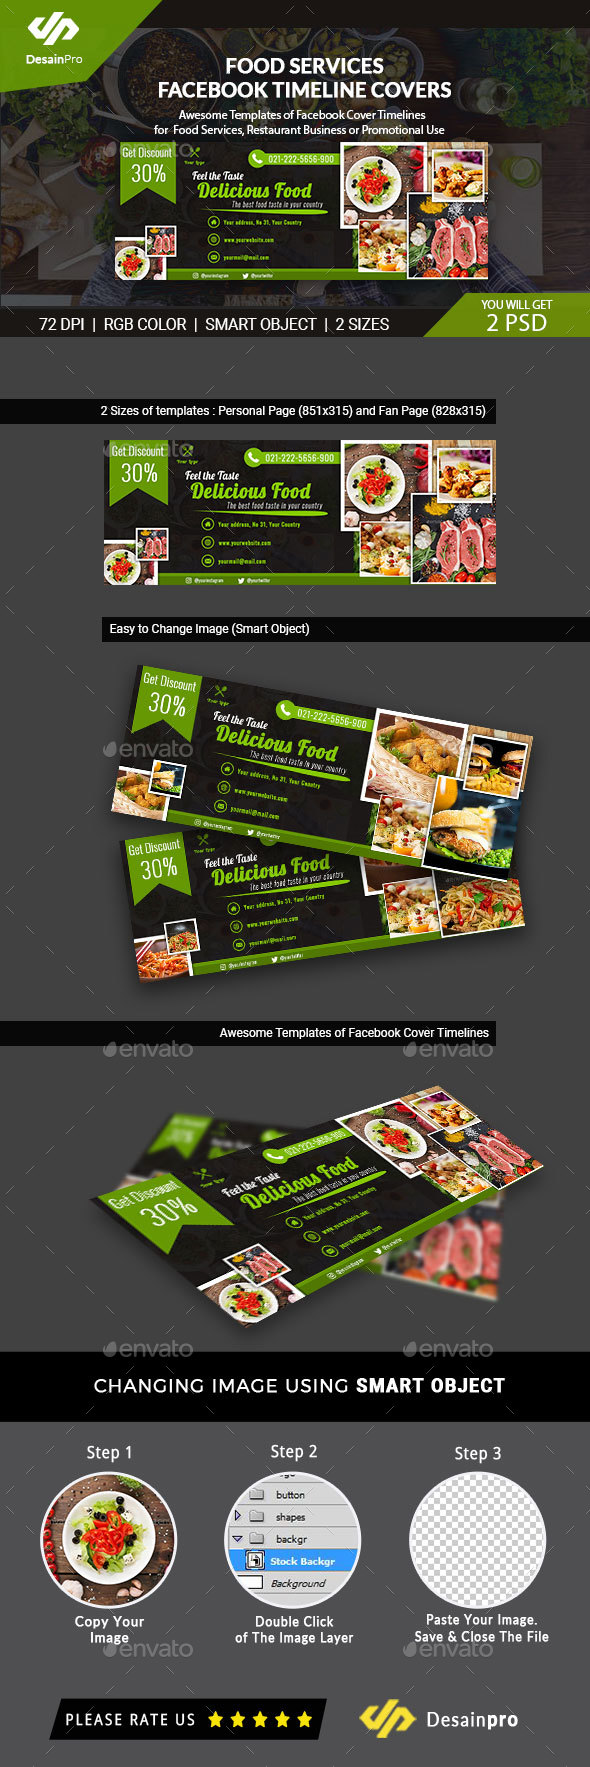 Food Business Services Facebook Timeline Covers - AR - Facebook Timeline Covers Social Media